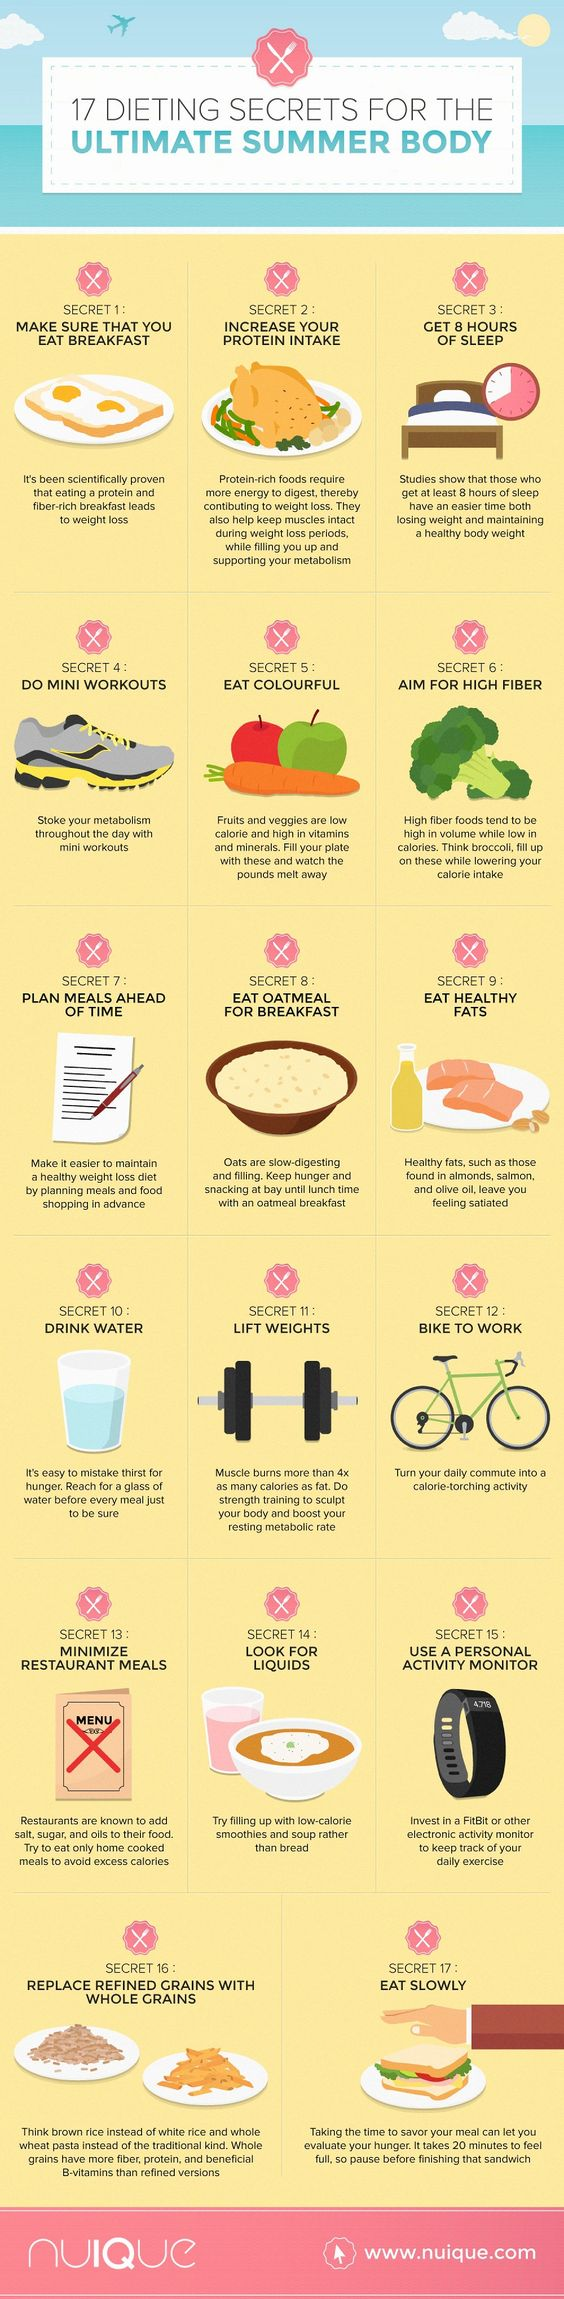 17 Dieting Secrets for the Ultimate Summer Body #infographic #Health #Dieting